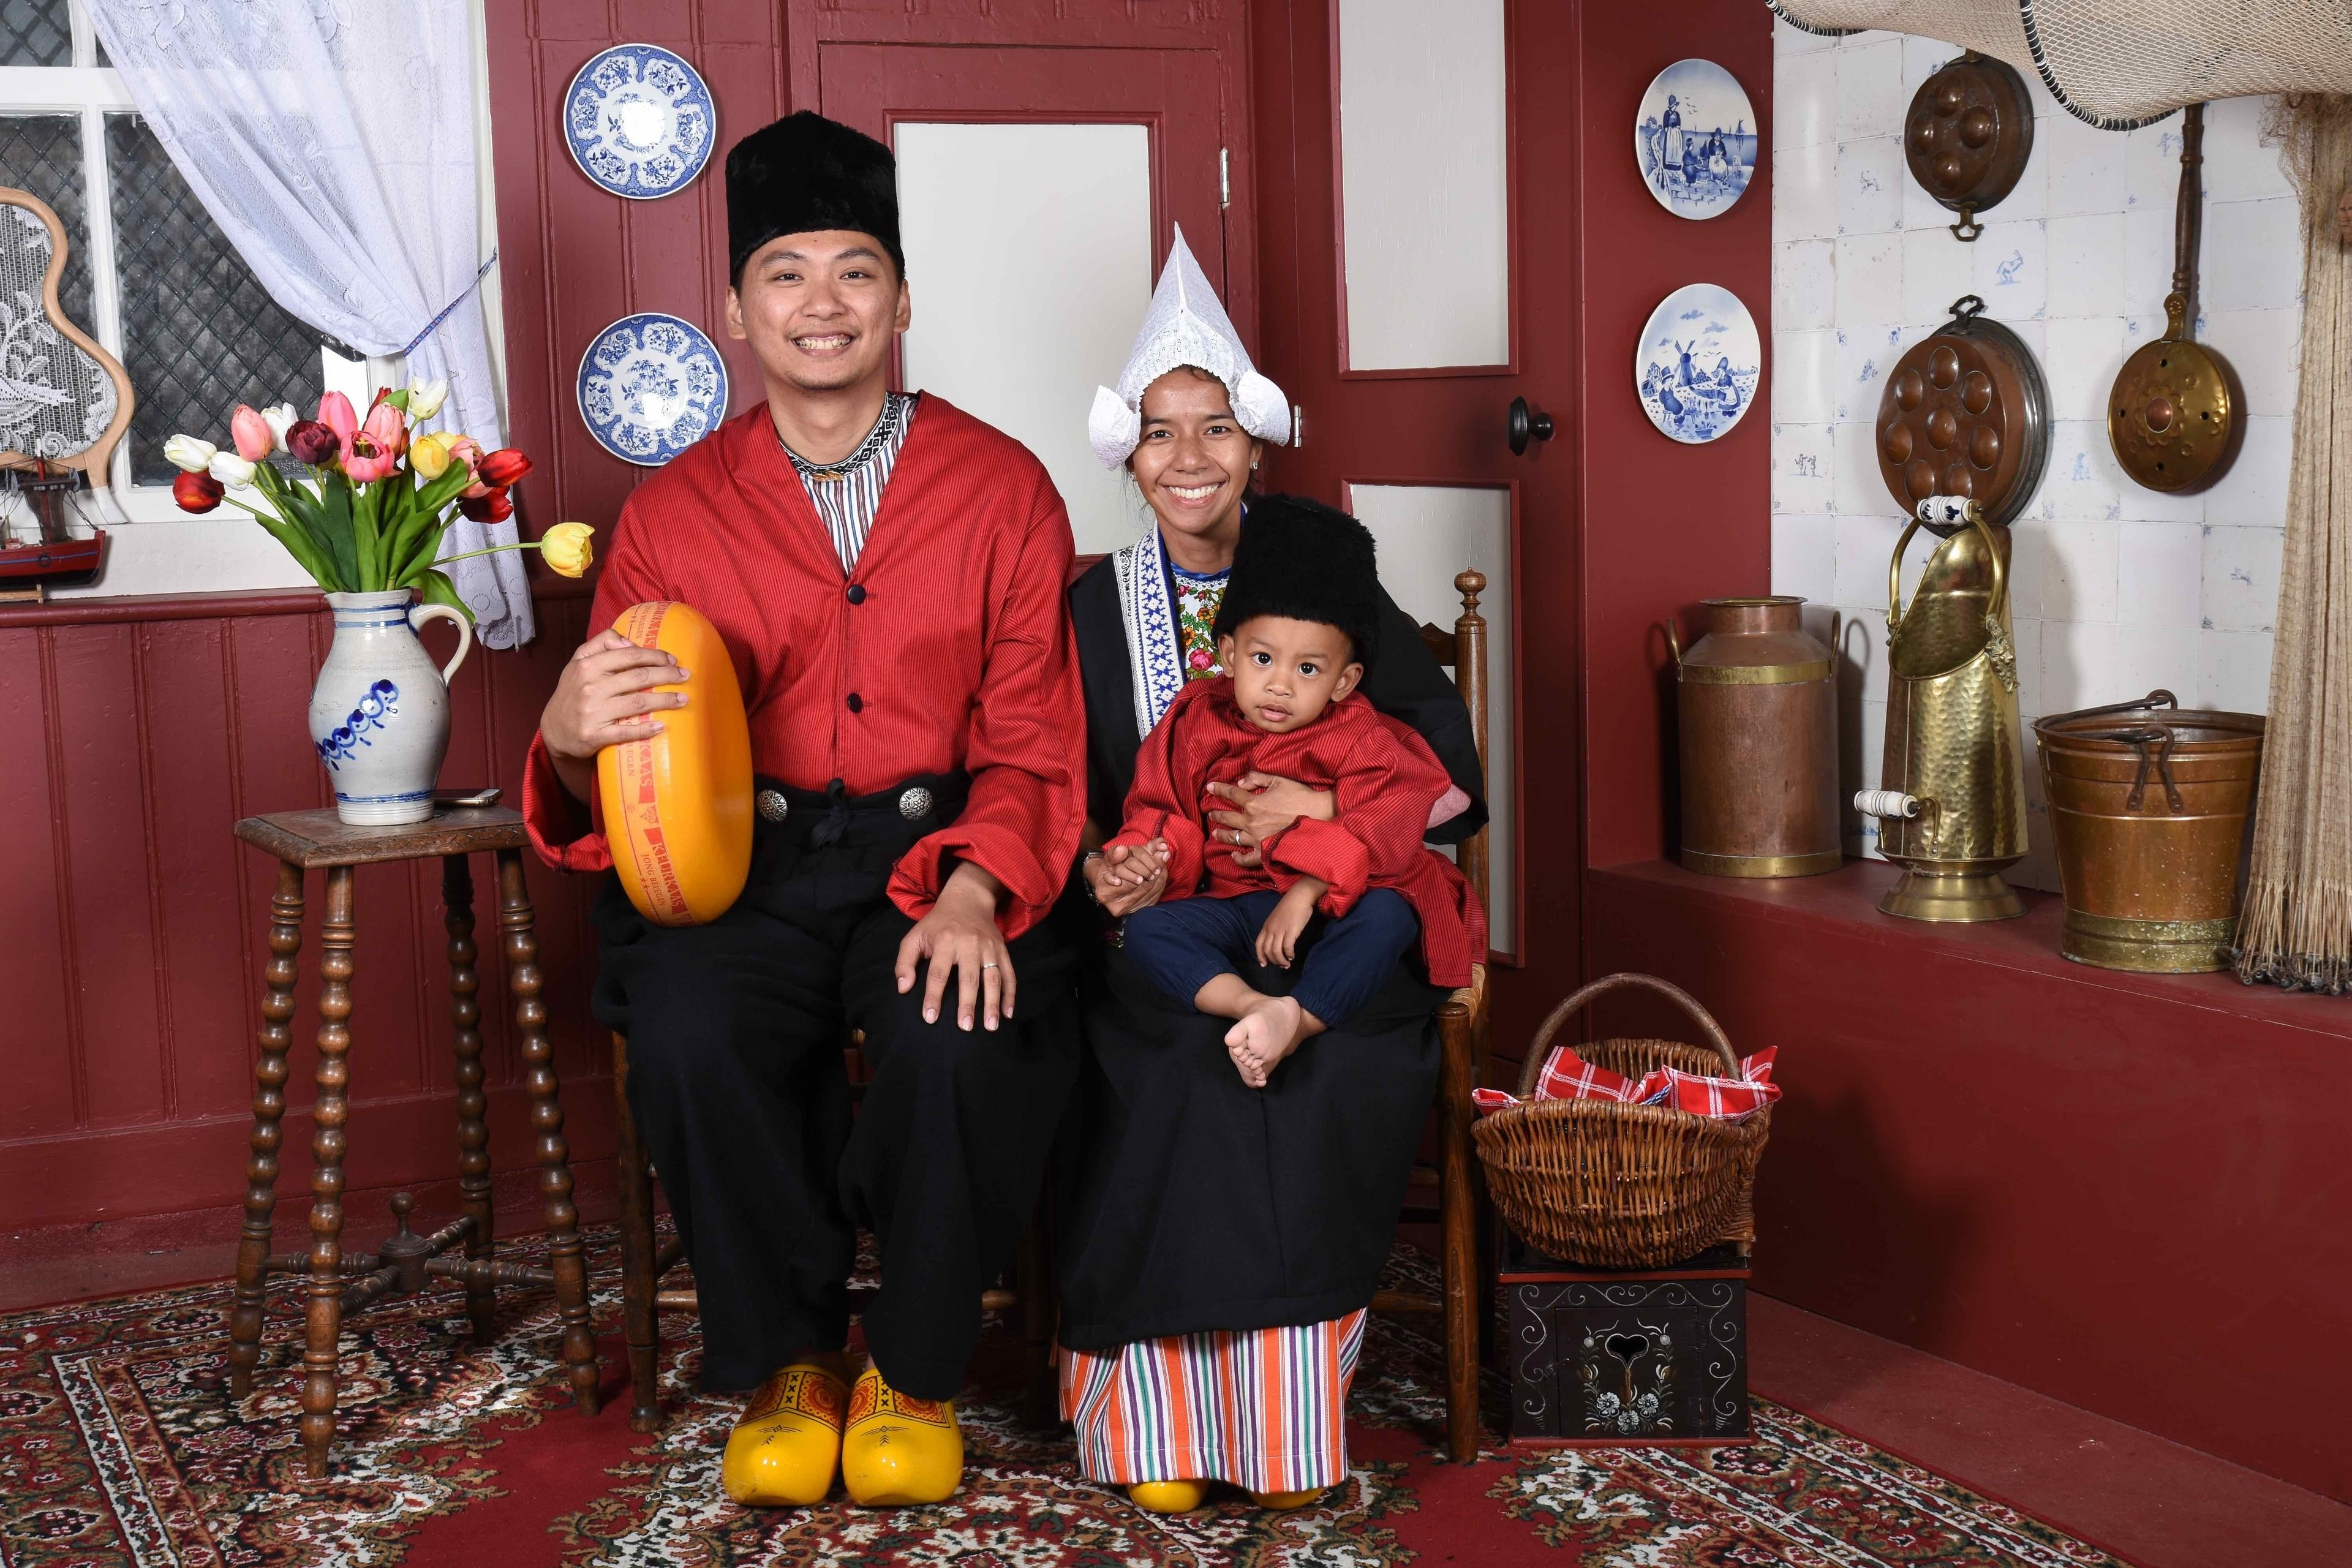 Asian family dressed in traditional clothing at the Dutch Costume Museum